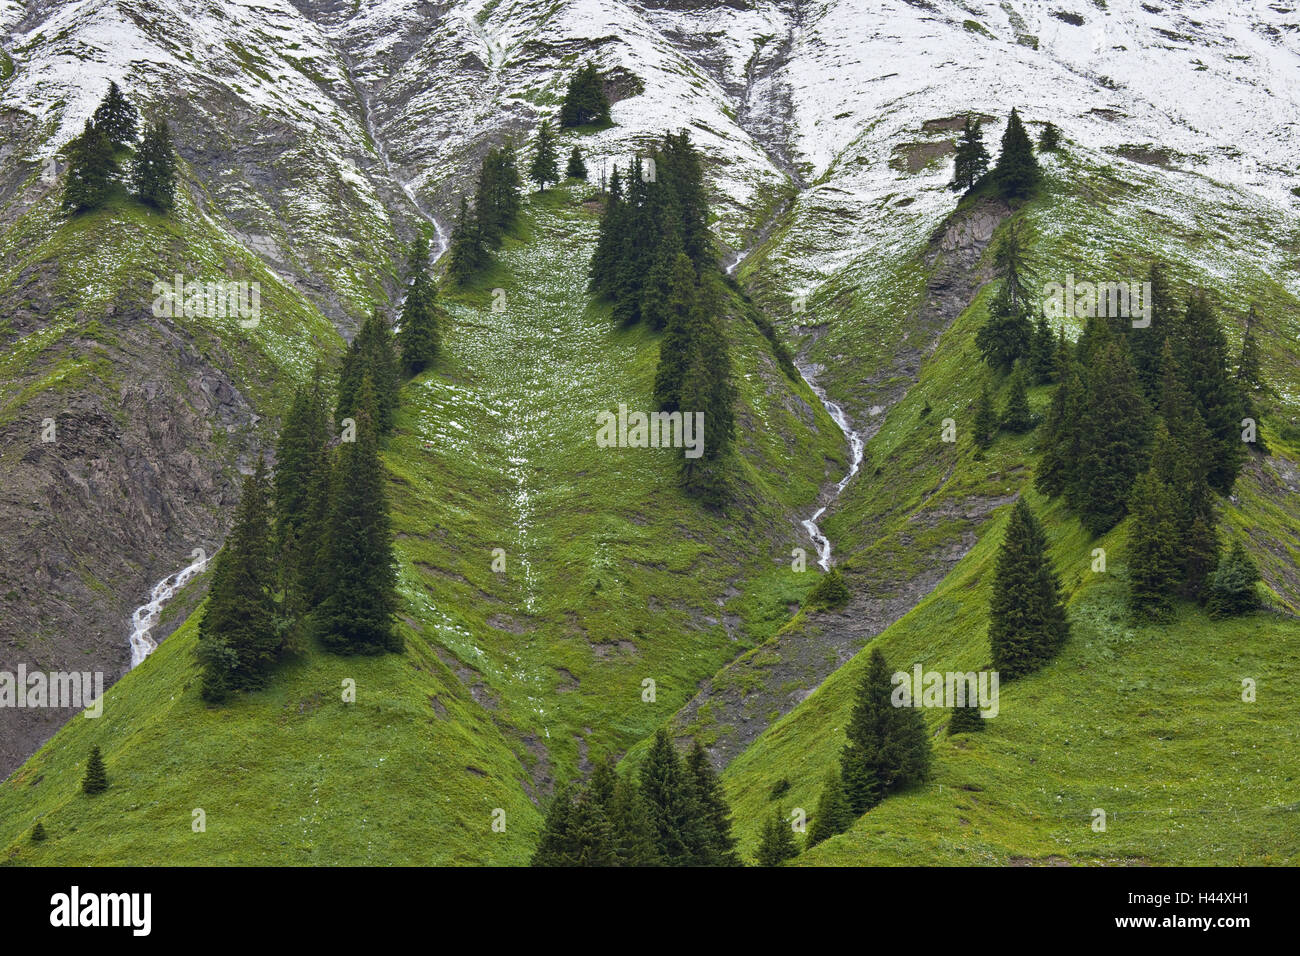 Austria, Vorarlberg, Hochtannberg Pass, spruces, snow, Stock Photo